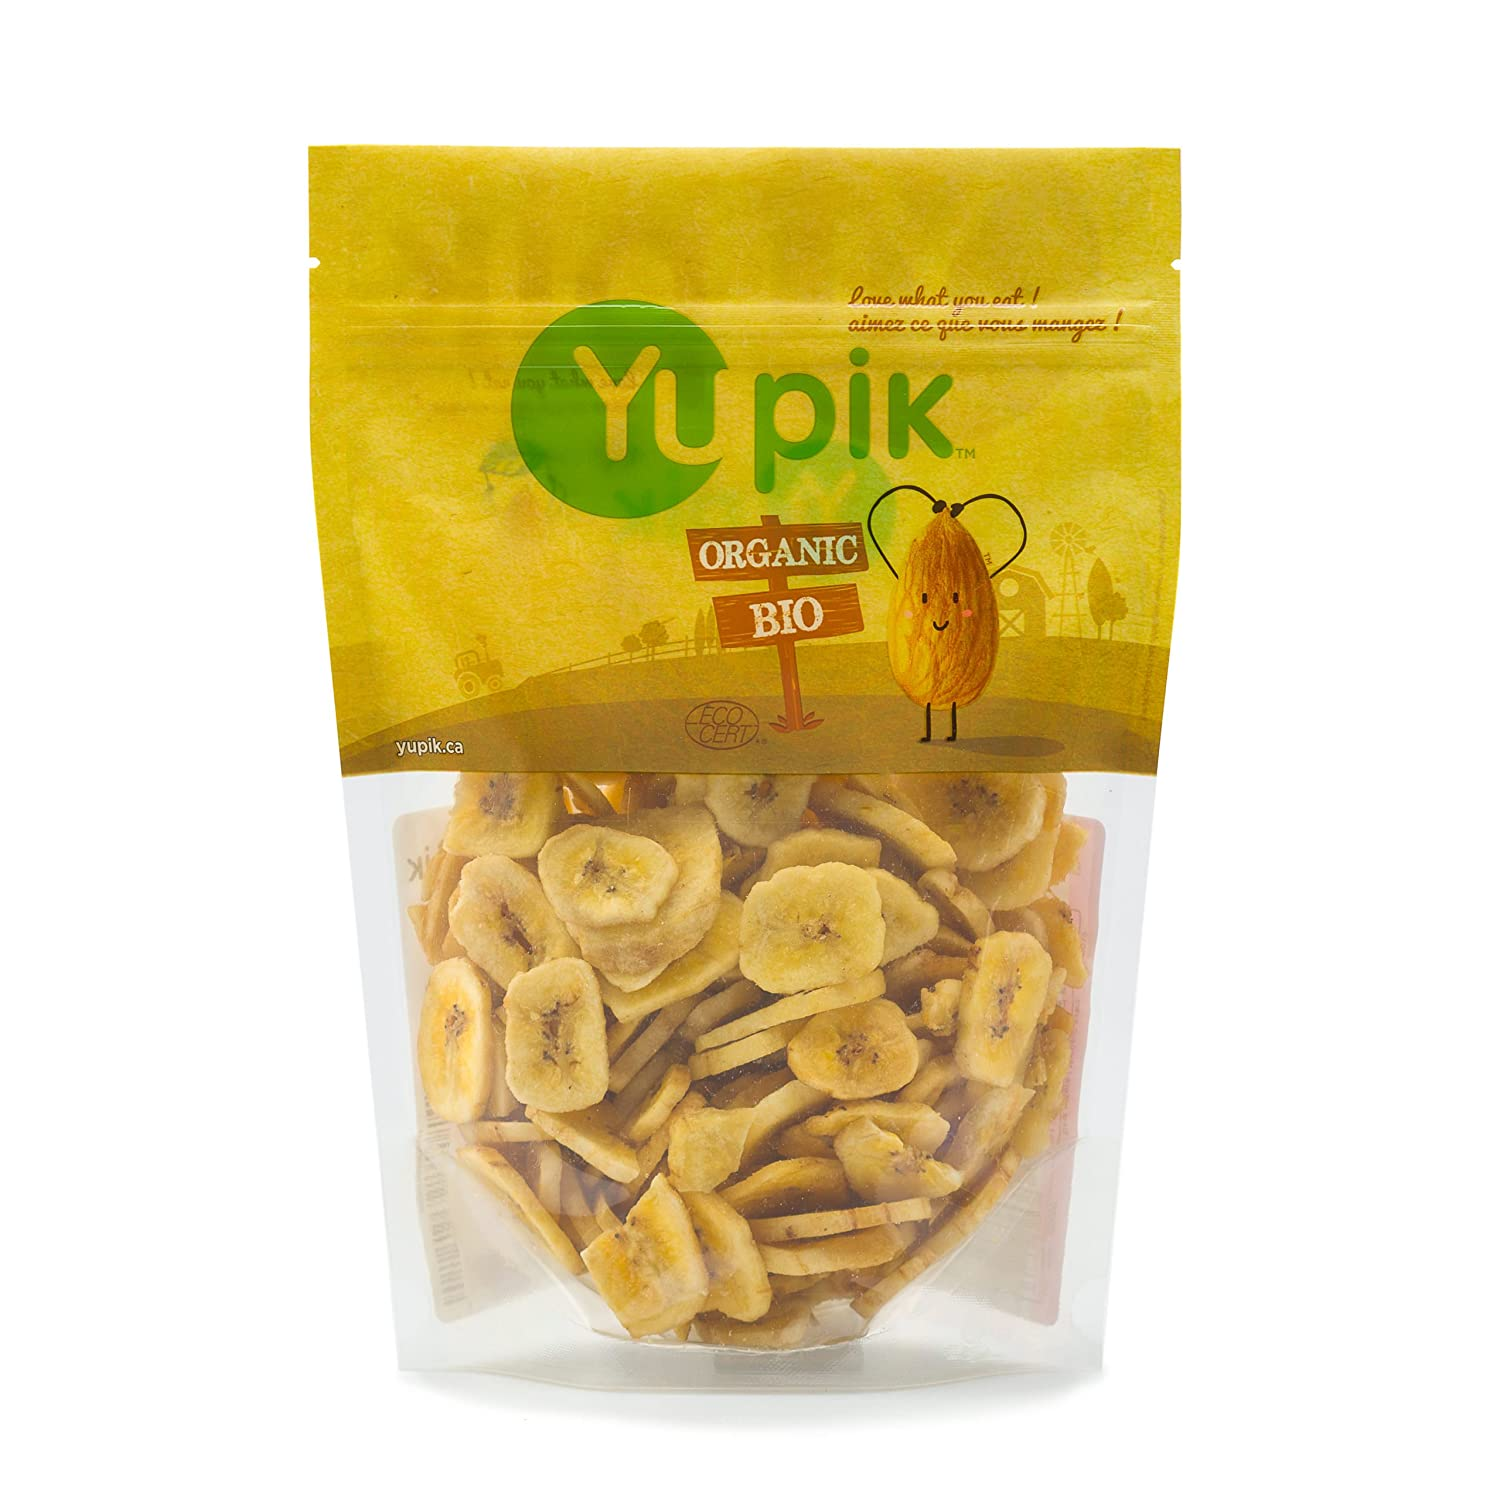 Yupik Organic Sweetened Banana Chips, 0.40Kg